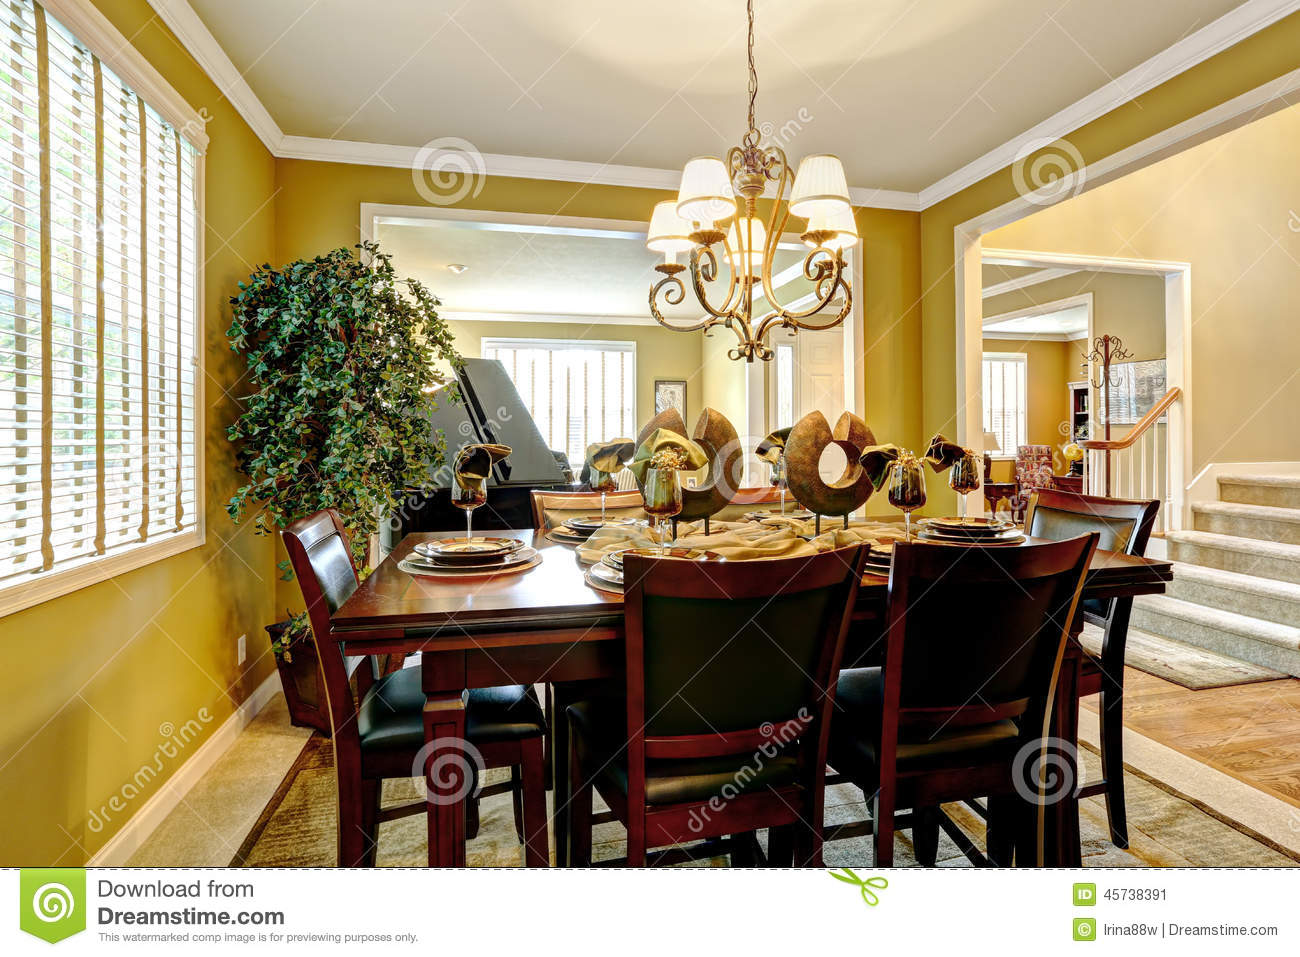 Luxury House Interior Served Dining Table In Bright Room